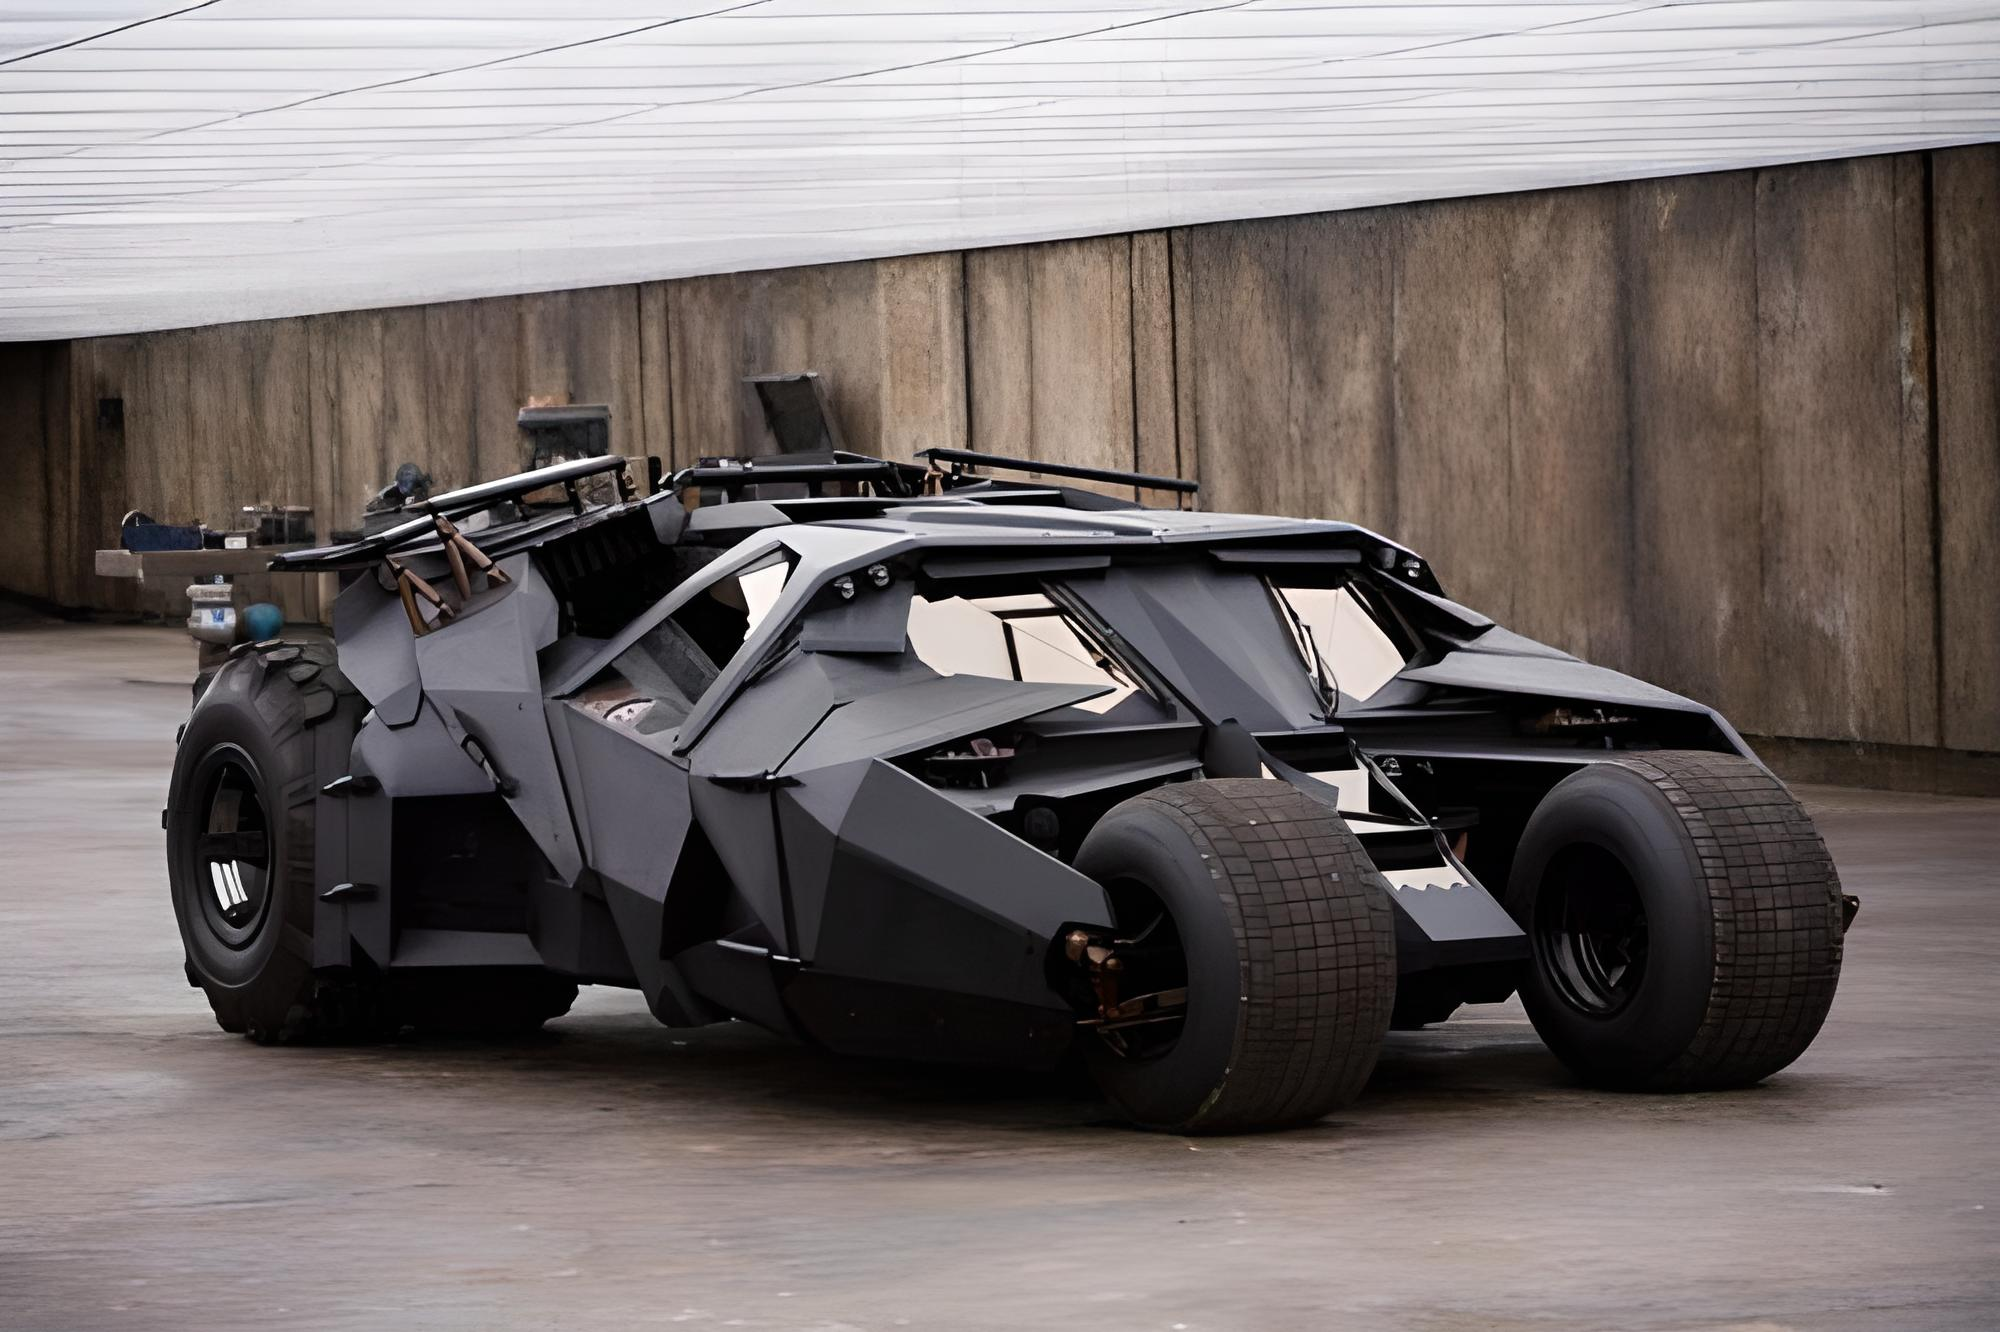 File:Thedarkknight17po4.jpg